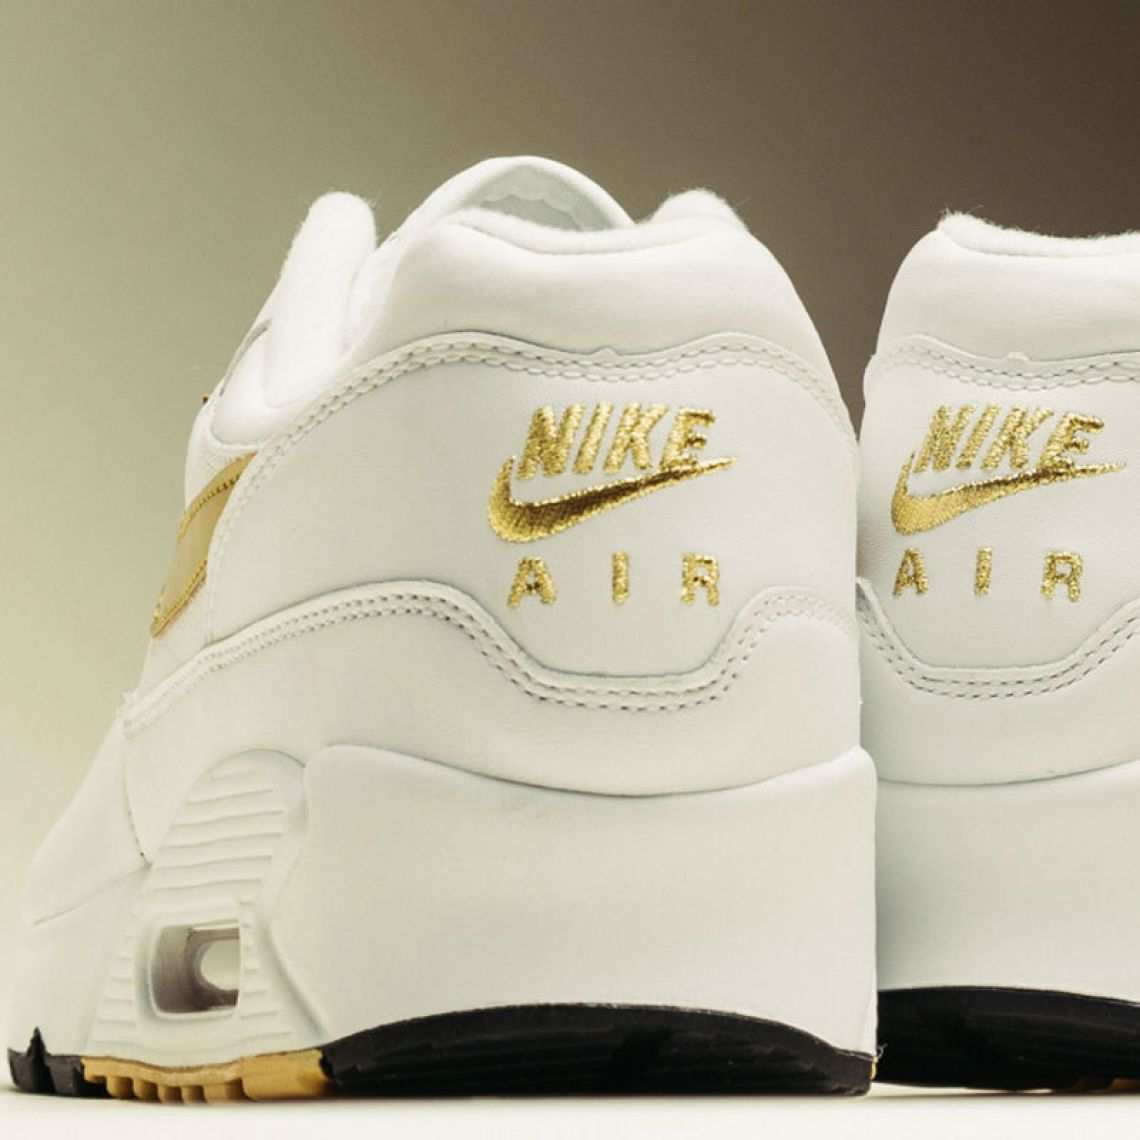 """innovative design 27242 1d26a Releasing on Sept. 1, look for the Nike AM 90 1 """"White Metallic Gold"""" to  retail  140 and be available select retailers like Feature."""